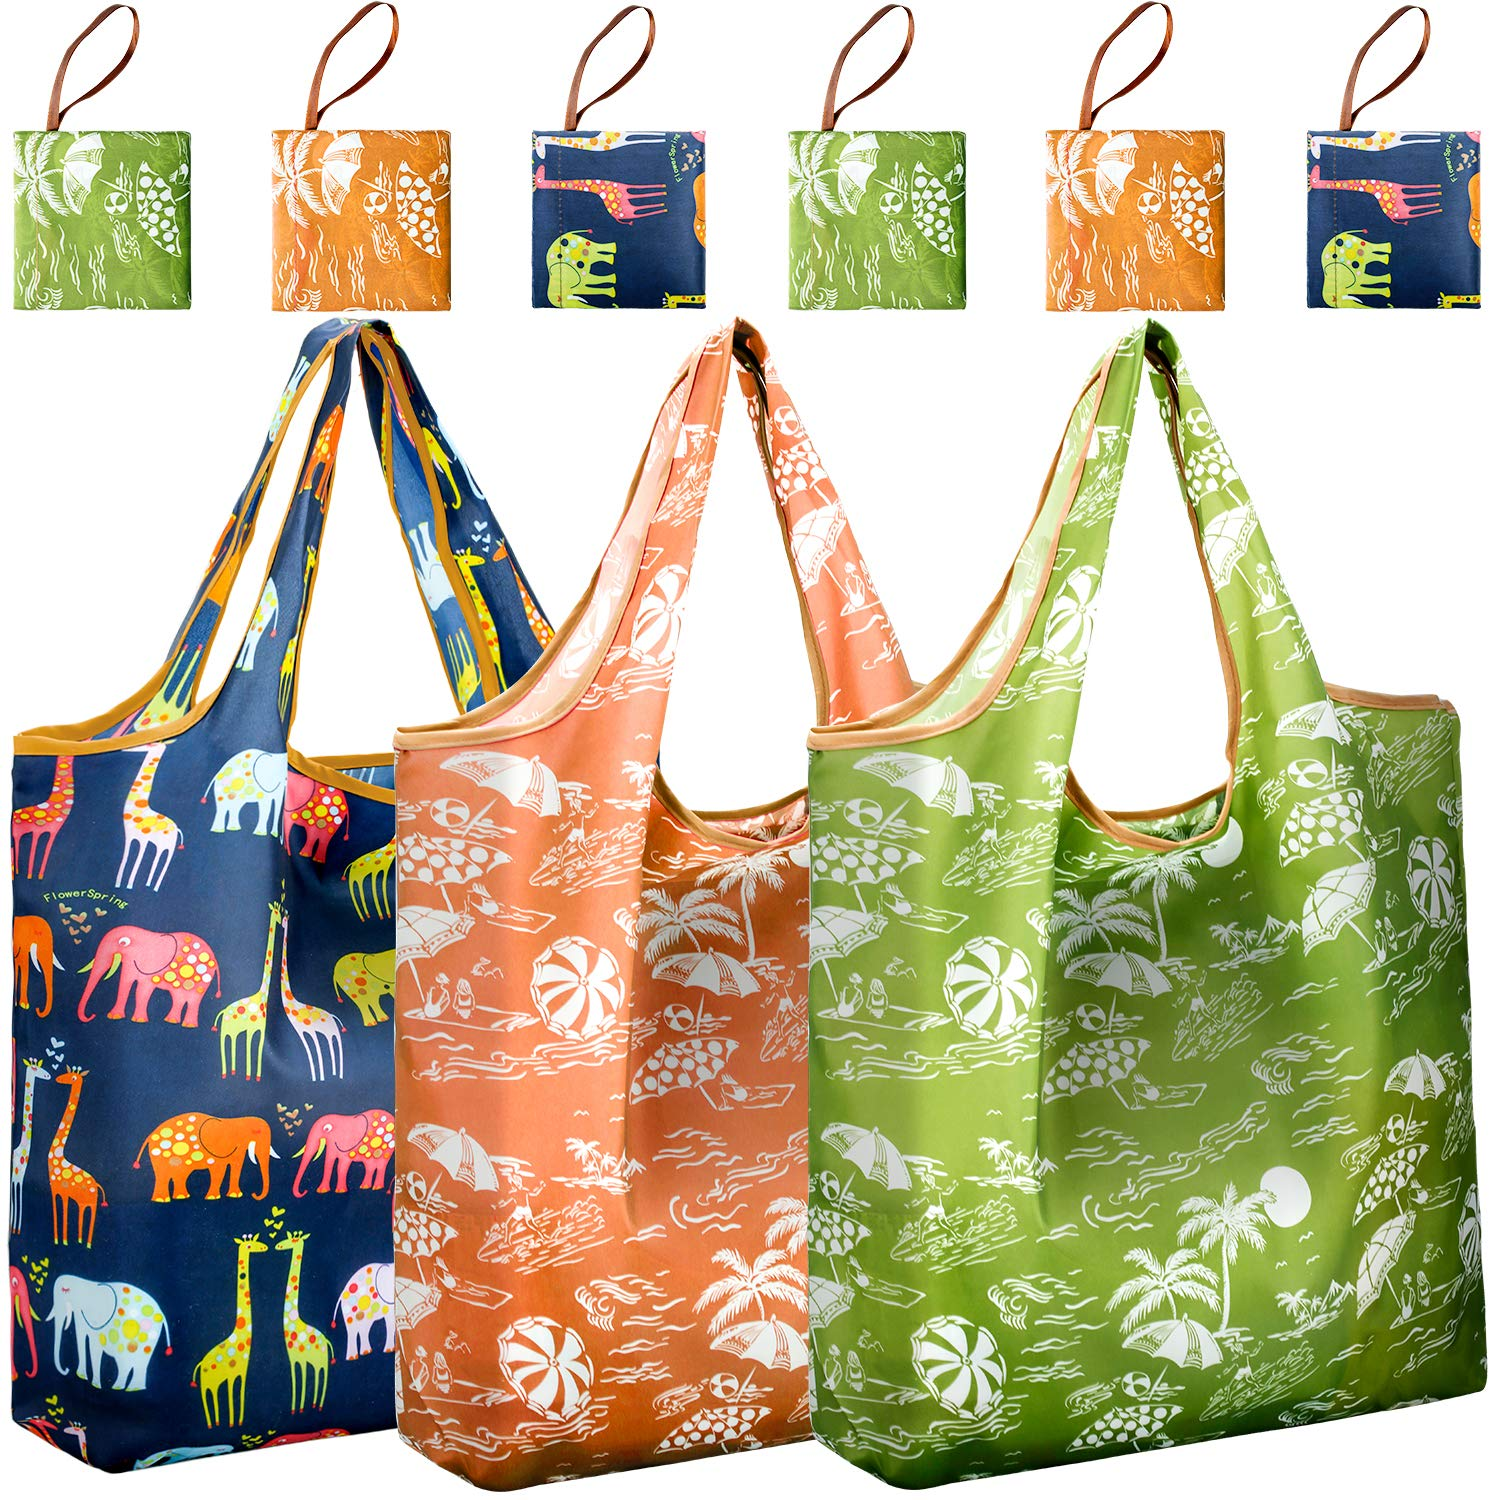 4c69a60a4fda Reusable Grocery Bag Pattern – Patterns Gallery